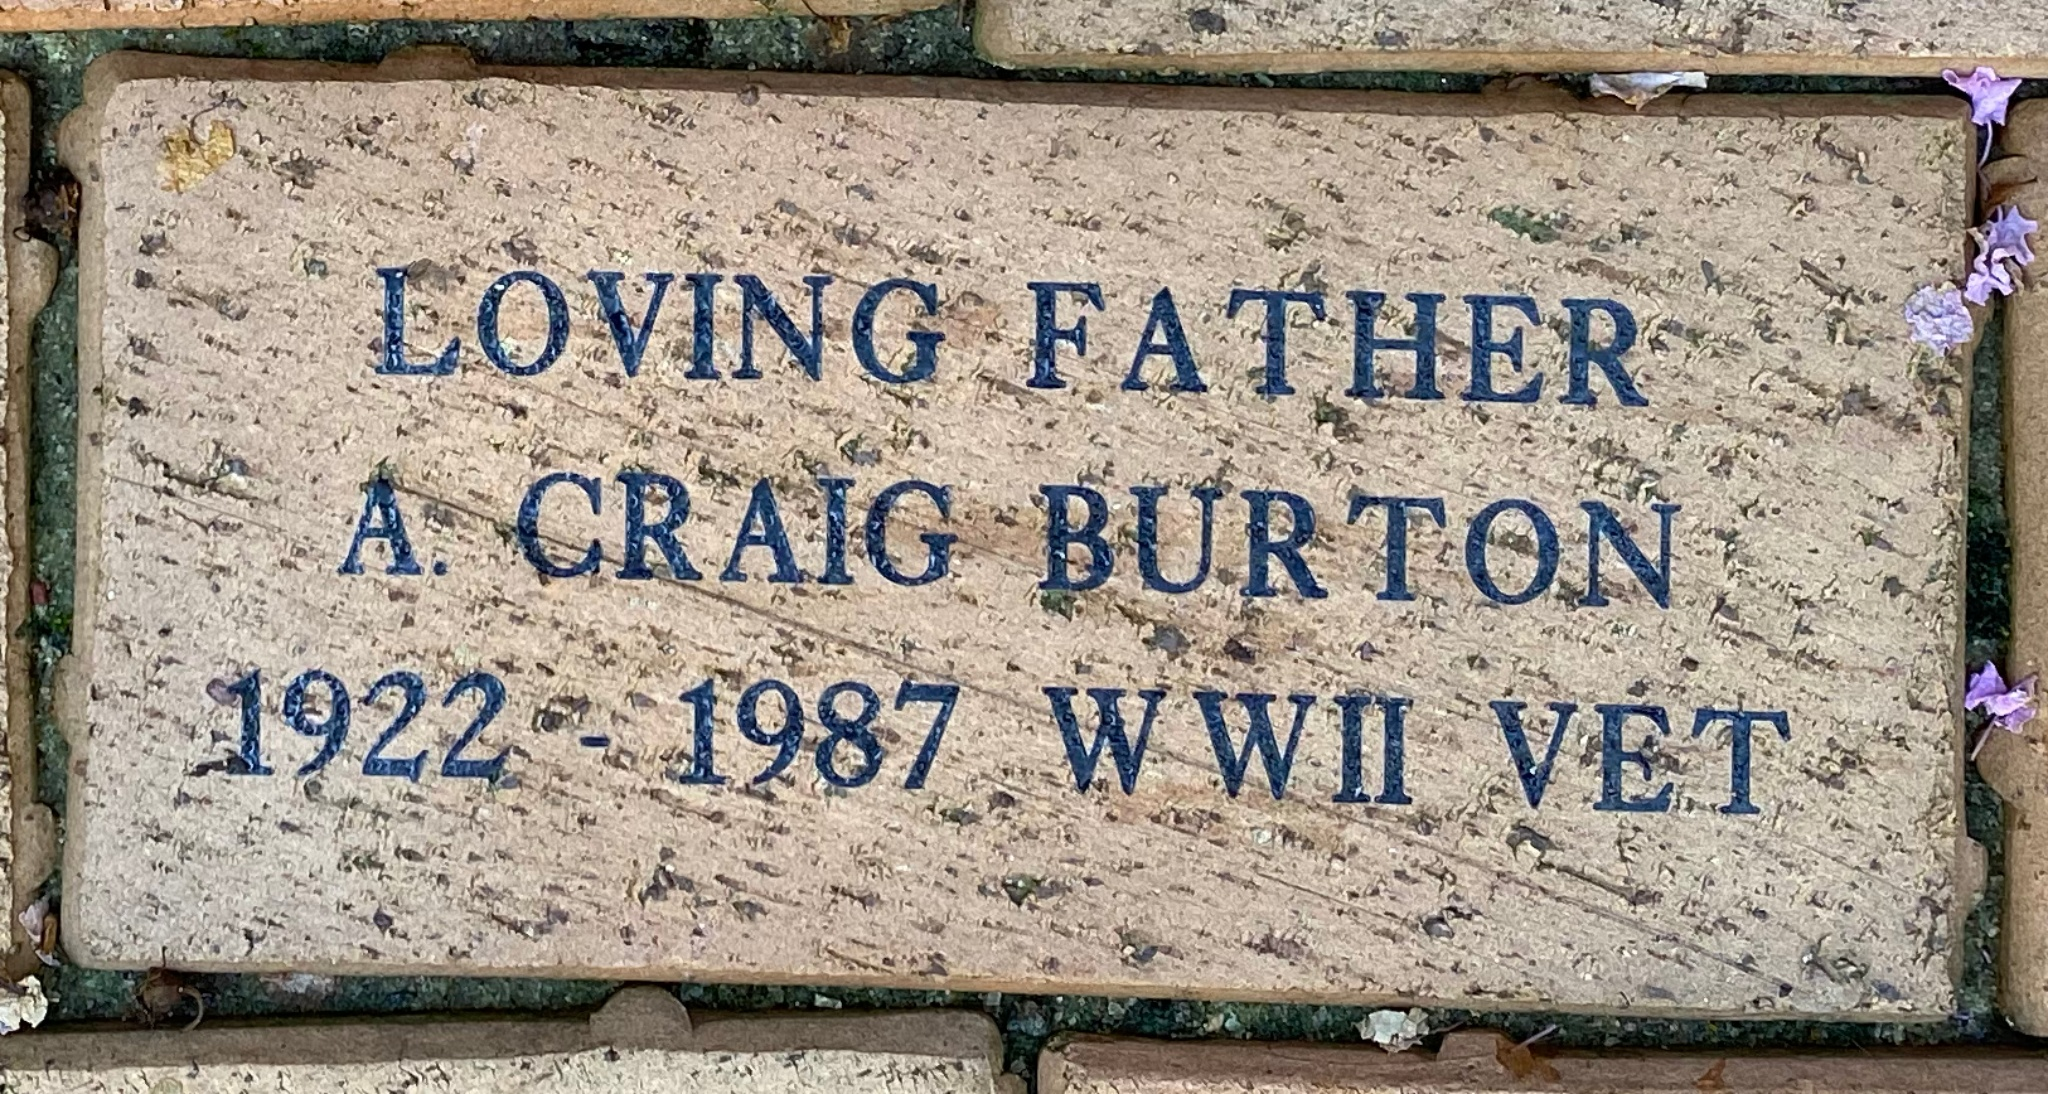 LOVING FATHER A. CRAIG BURTON 1922 – 1987 WWII VET